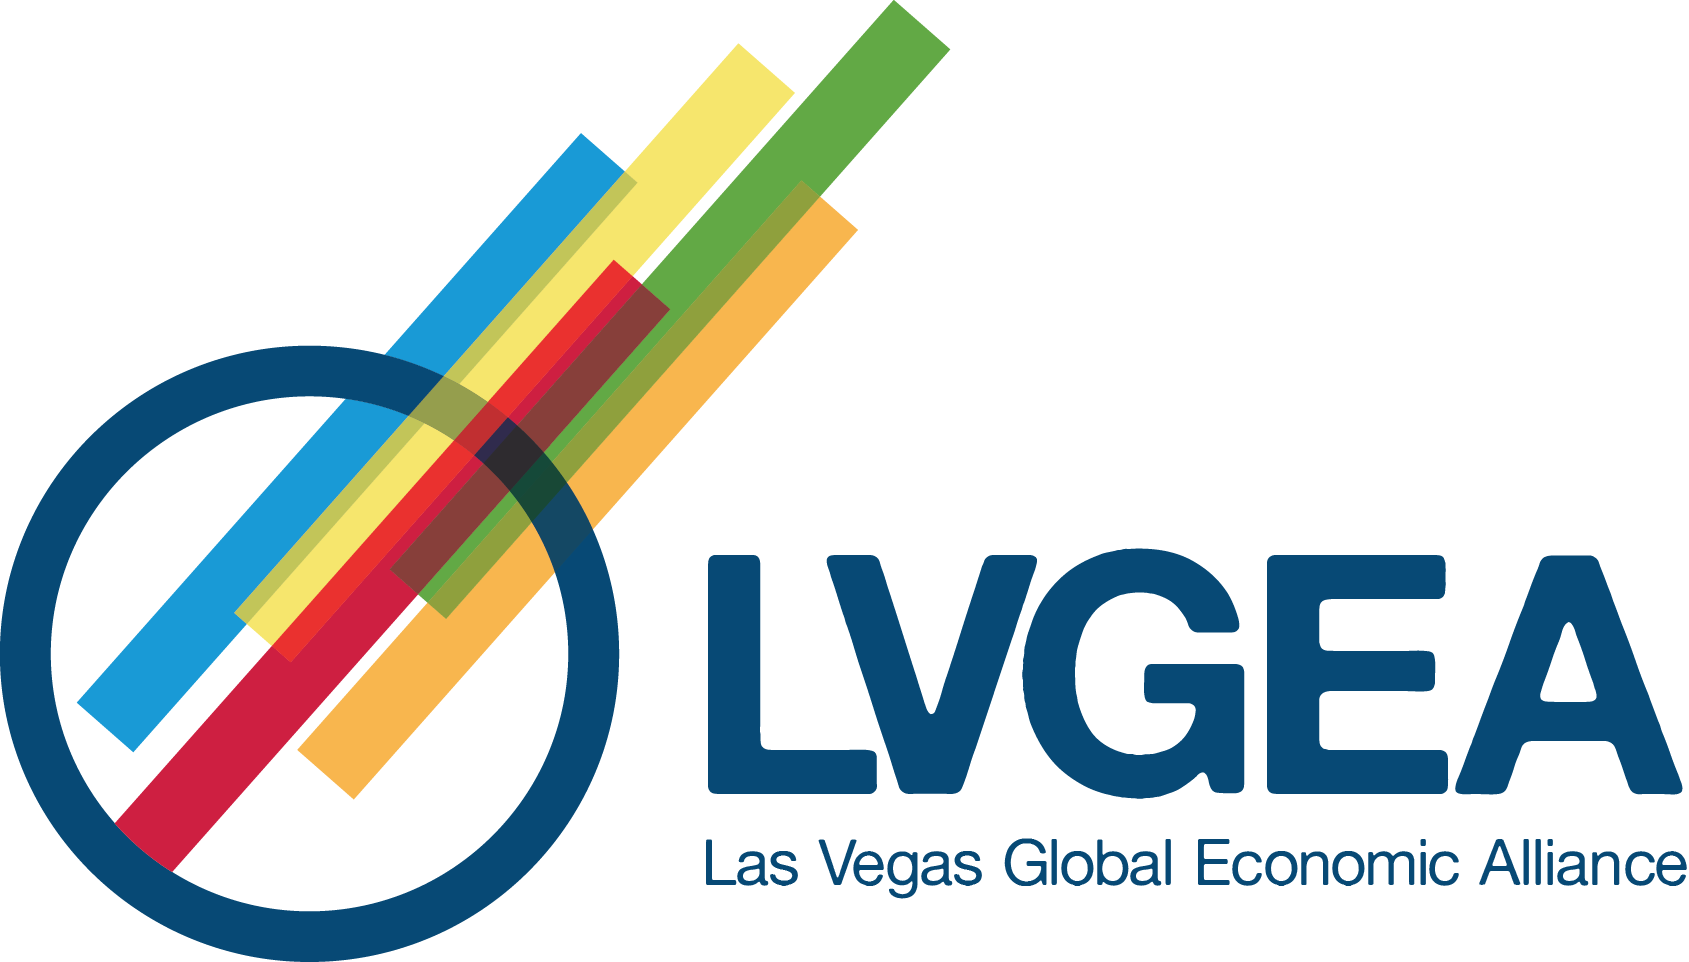 LVGEA becomes the largest C-level business board in Nevada